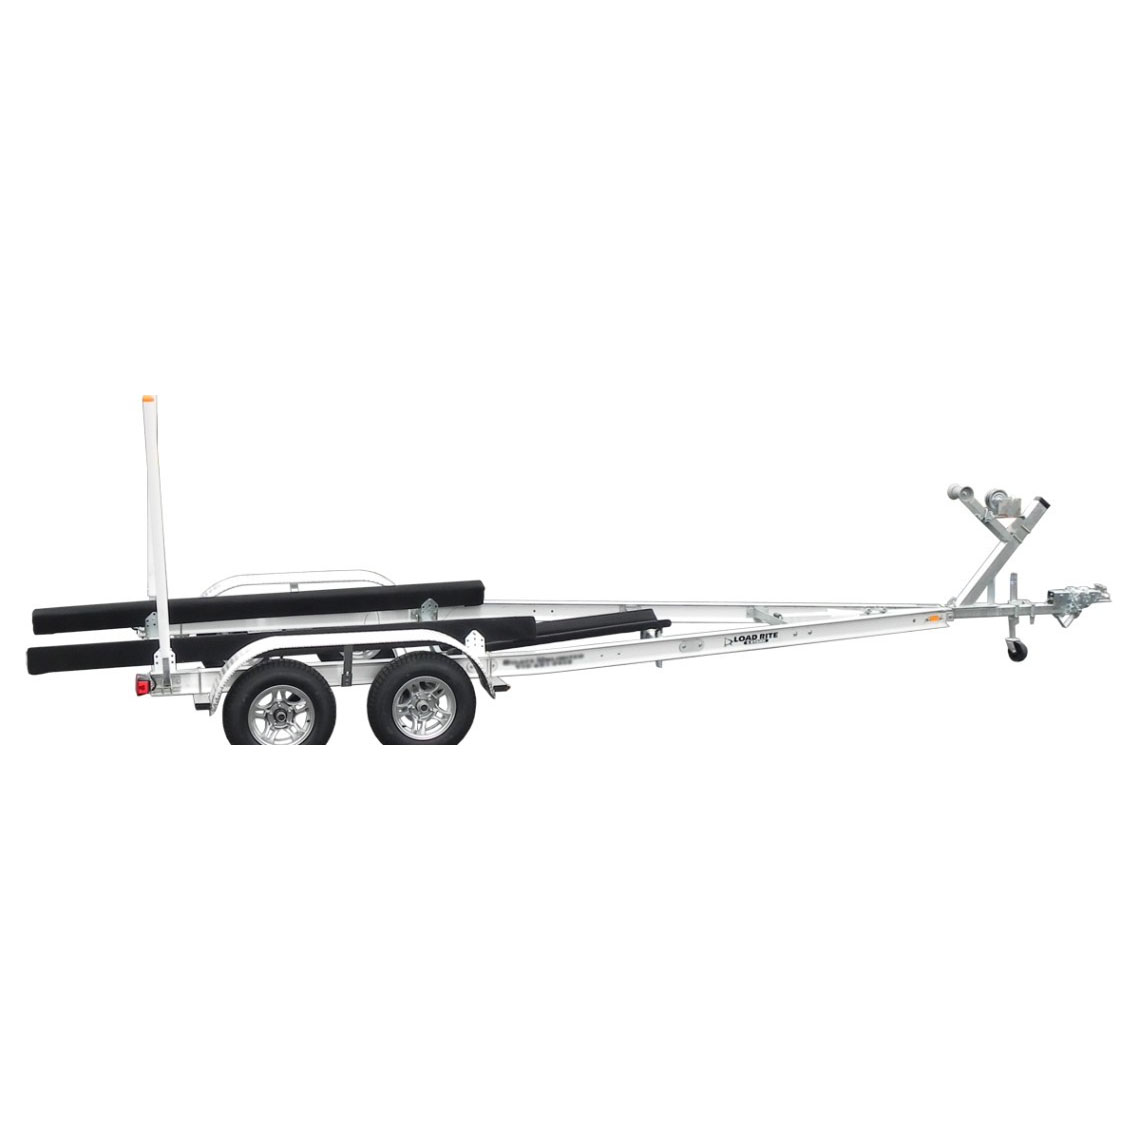 Boat Trailers Ontario Boat Trailers For Sale Canada Boat